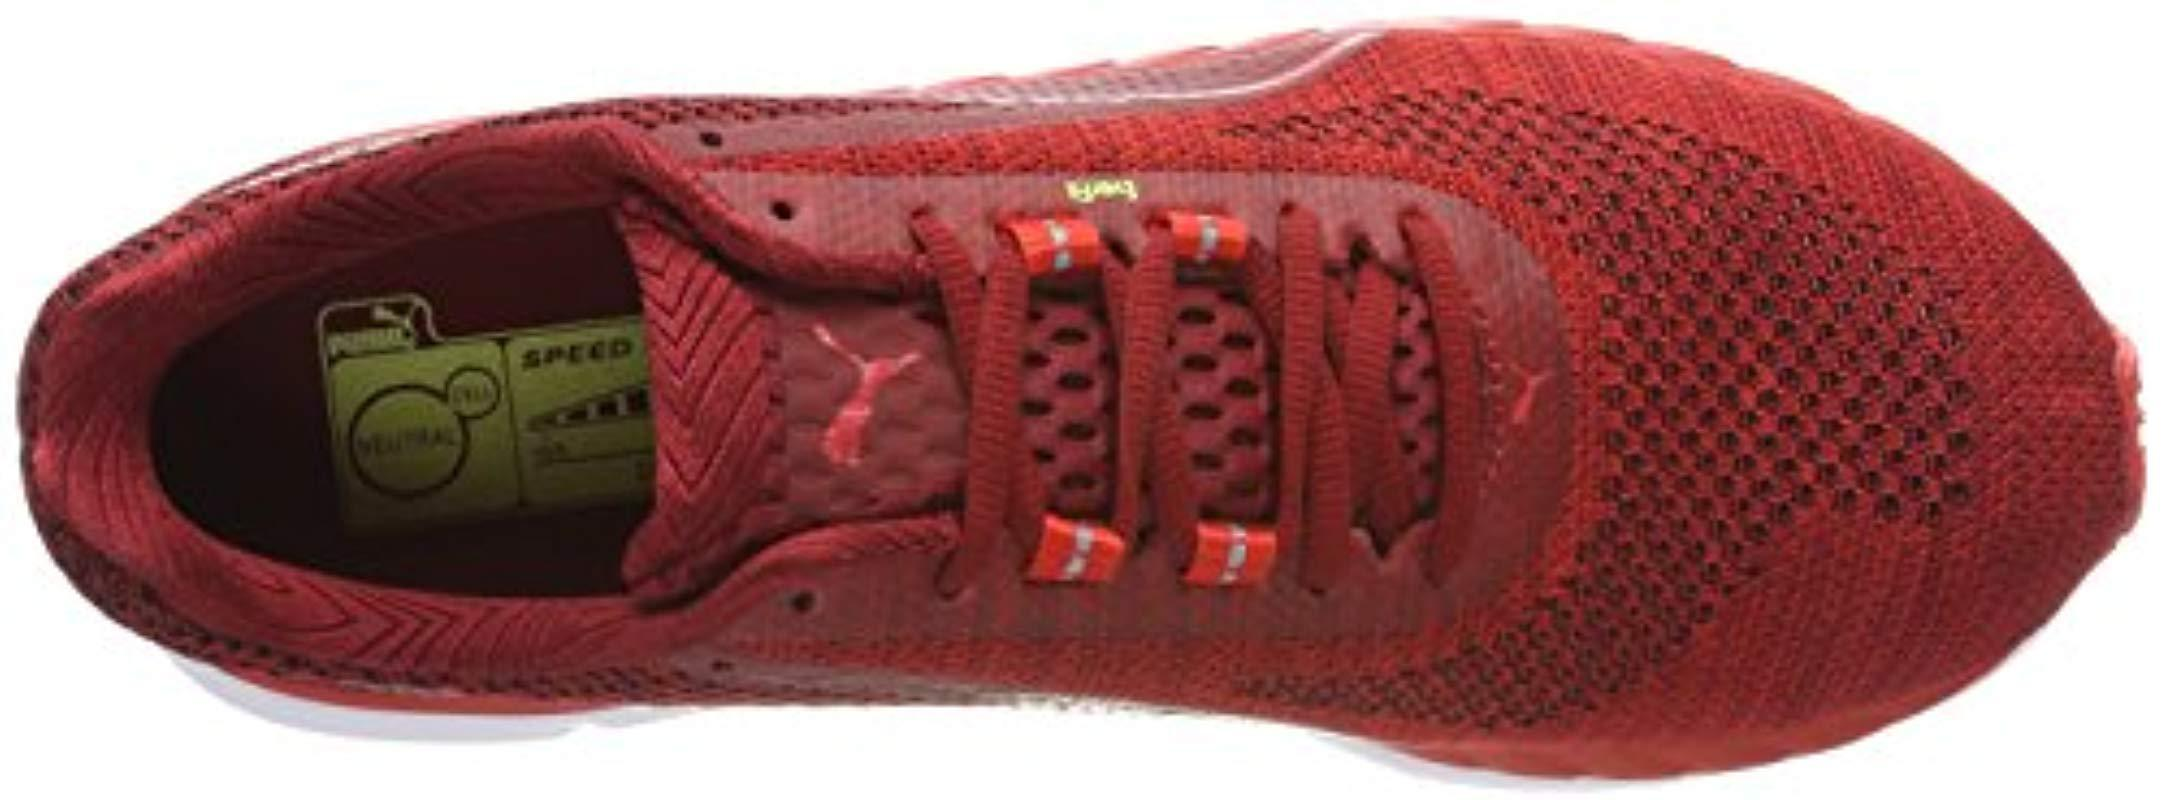 ad98e886365a PUMA  s Speed 500 Ignite 3 Cross Trainers in Red for Men - Lyst